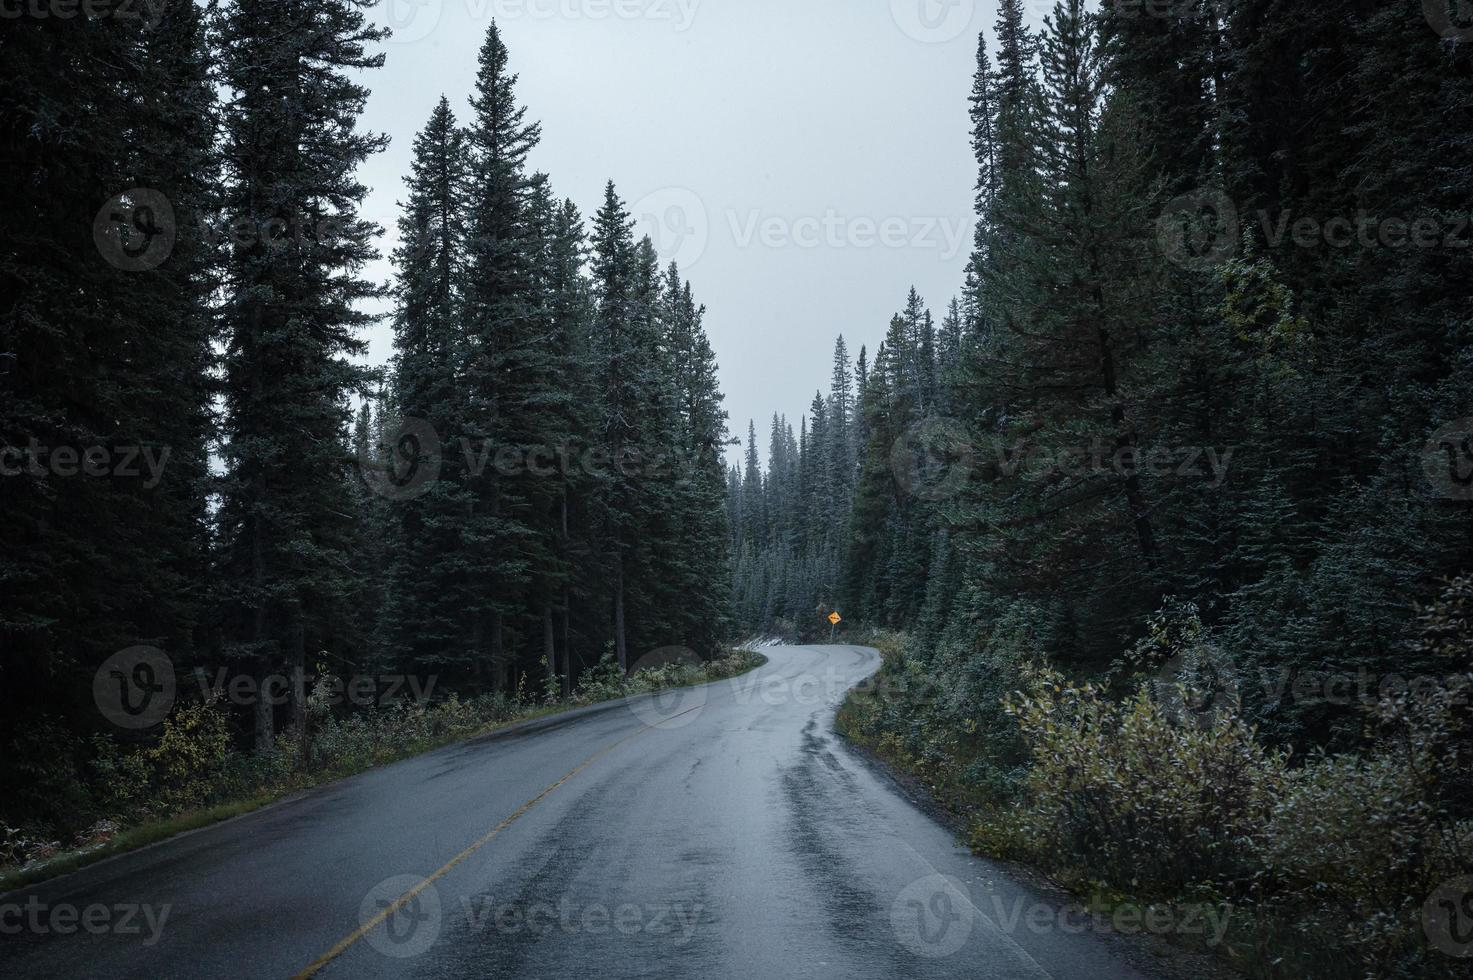 Asphalt highway curved in pine forest on gloomy at national park photo